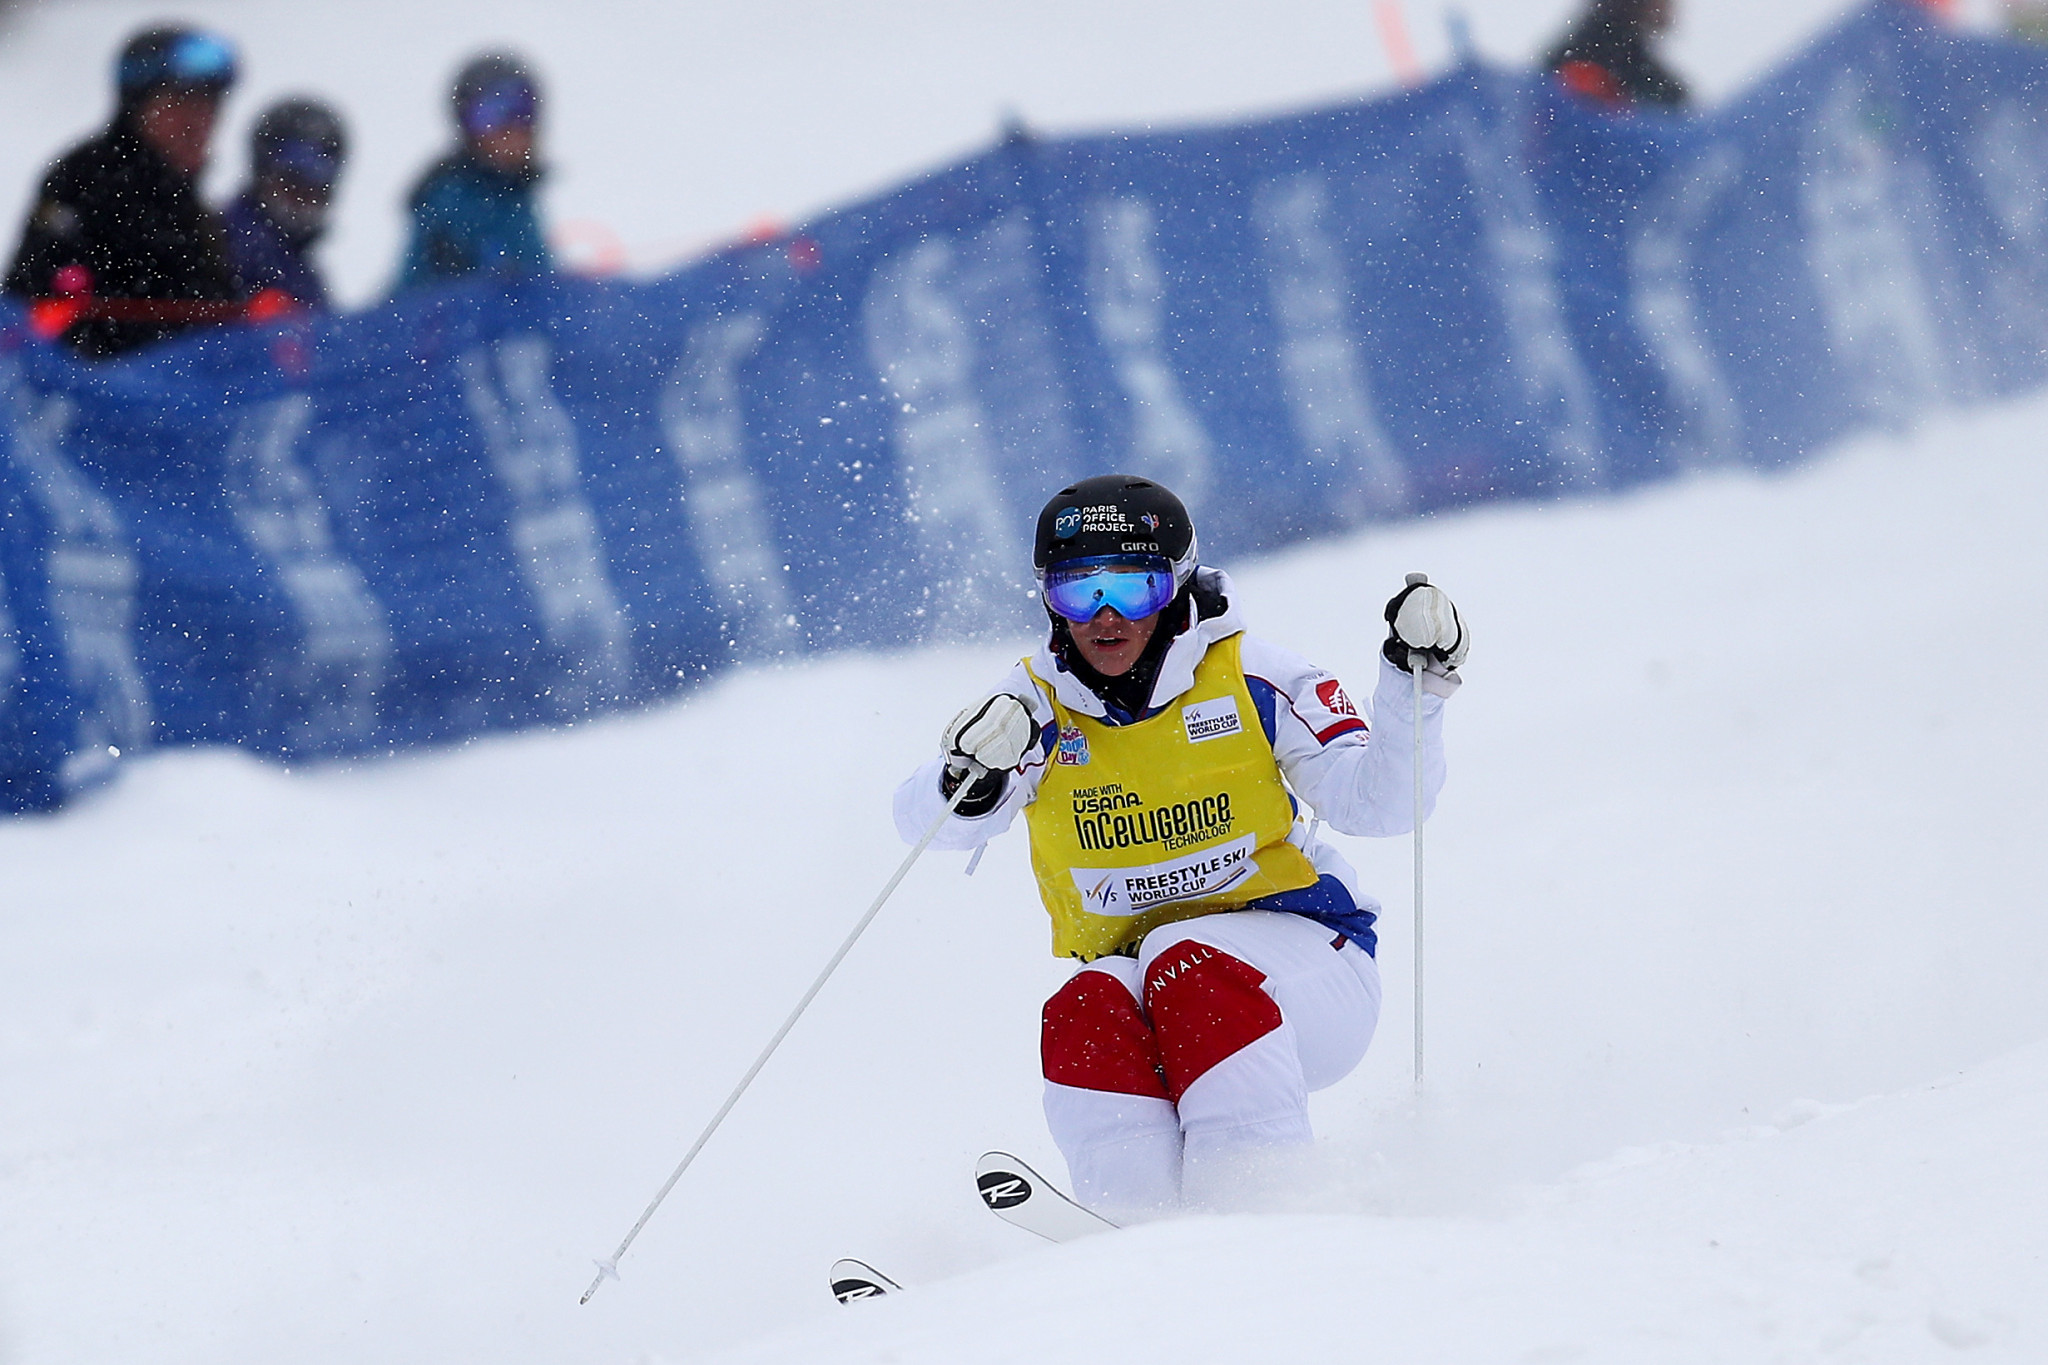 Perrine Laffont of France won the women's competition ©Getty Images